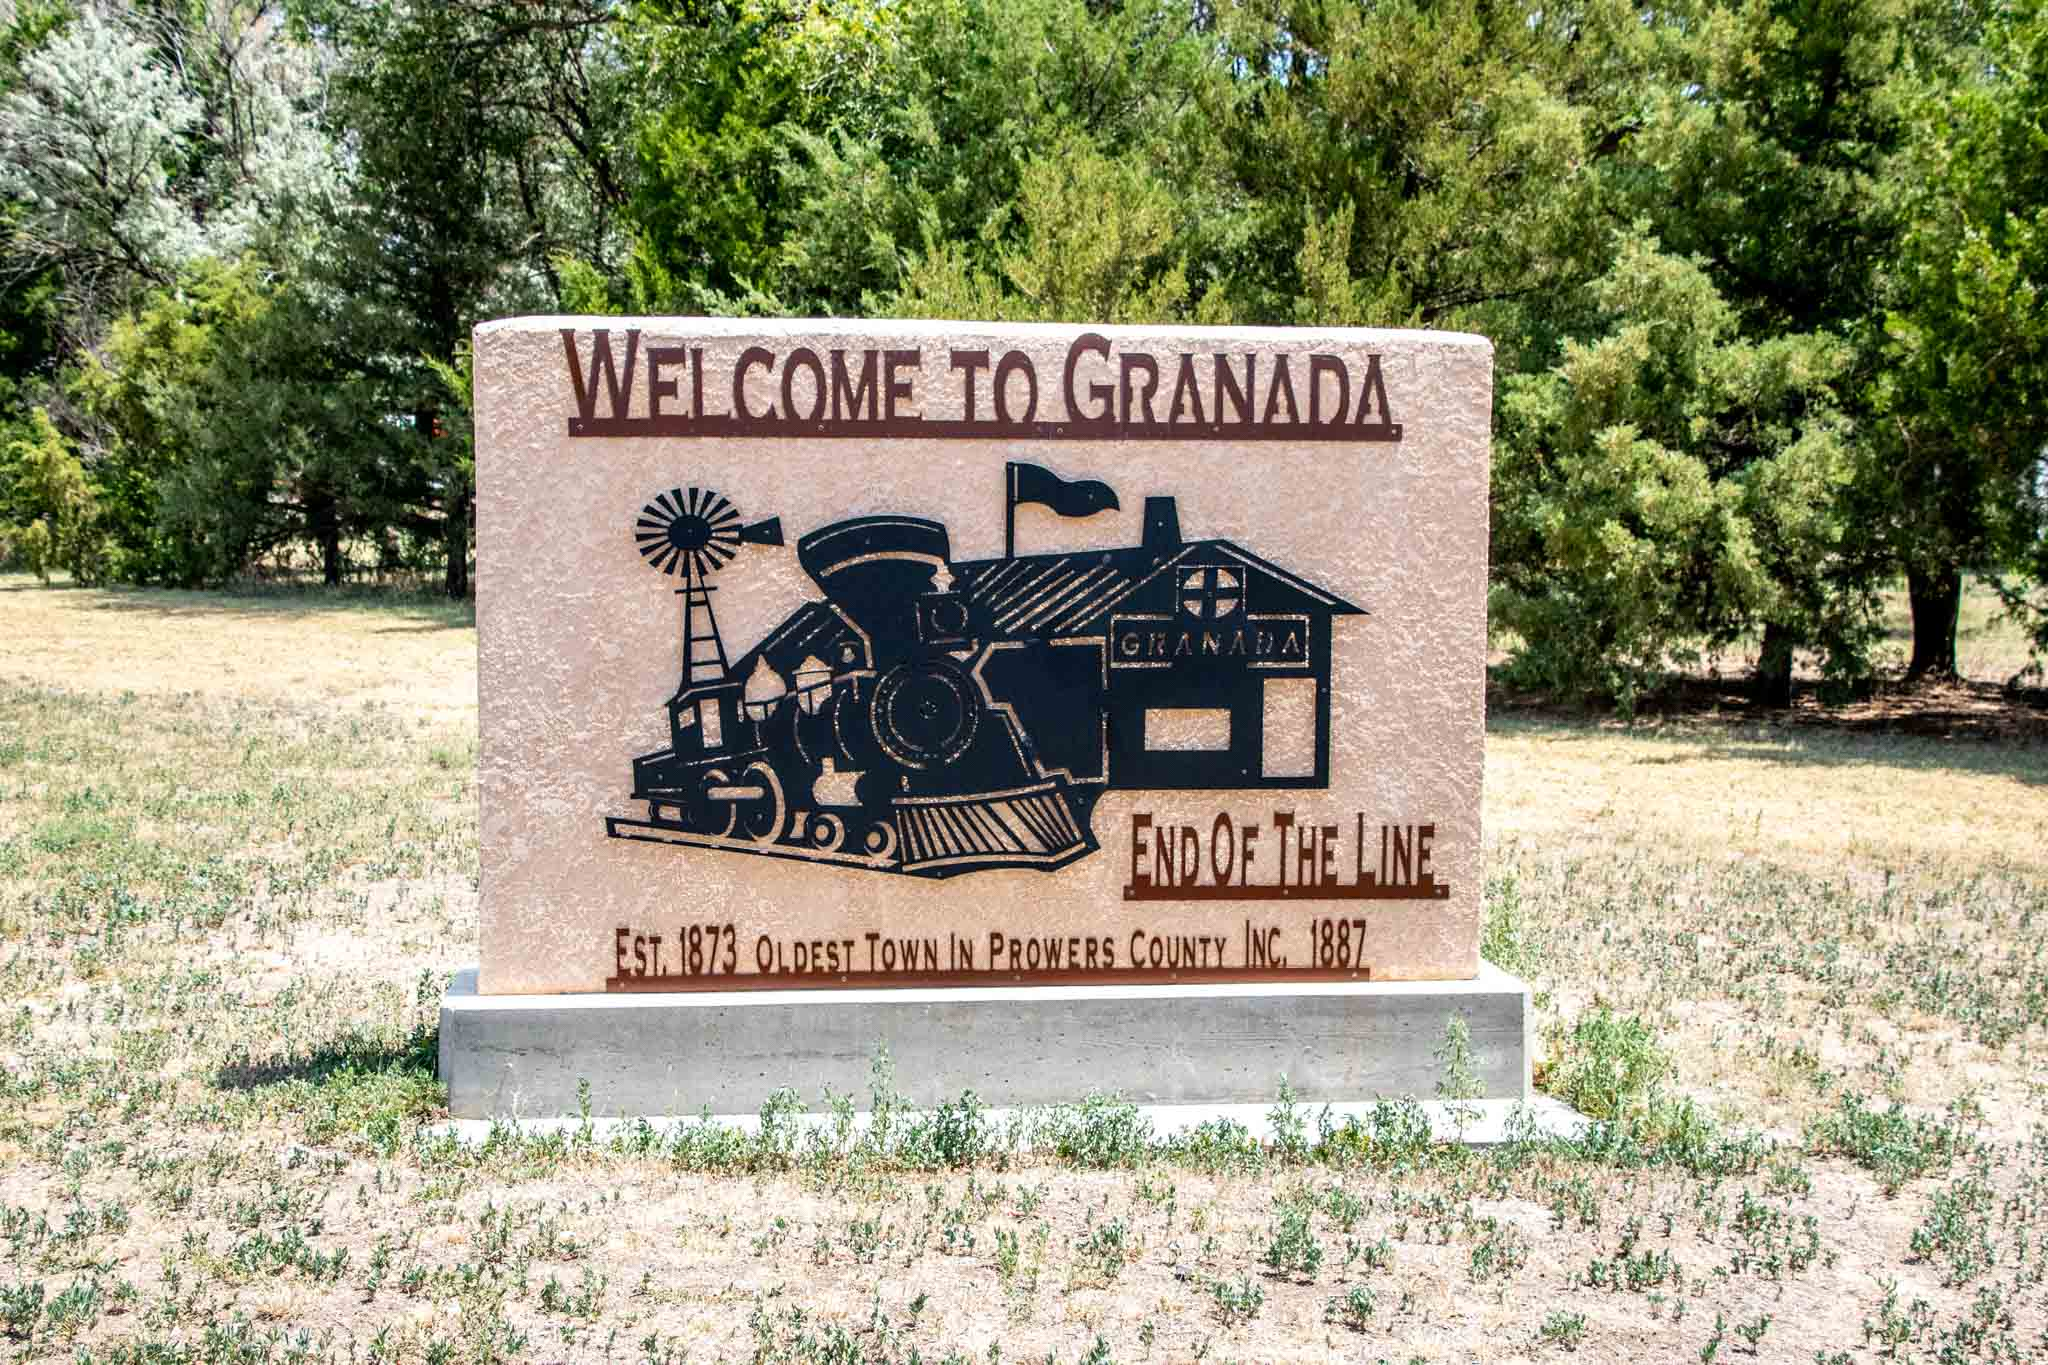 Sign saying Welcome to Granada, End of the Line, Established 1873, oldest town in Prowers County